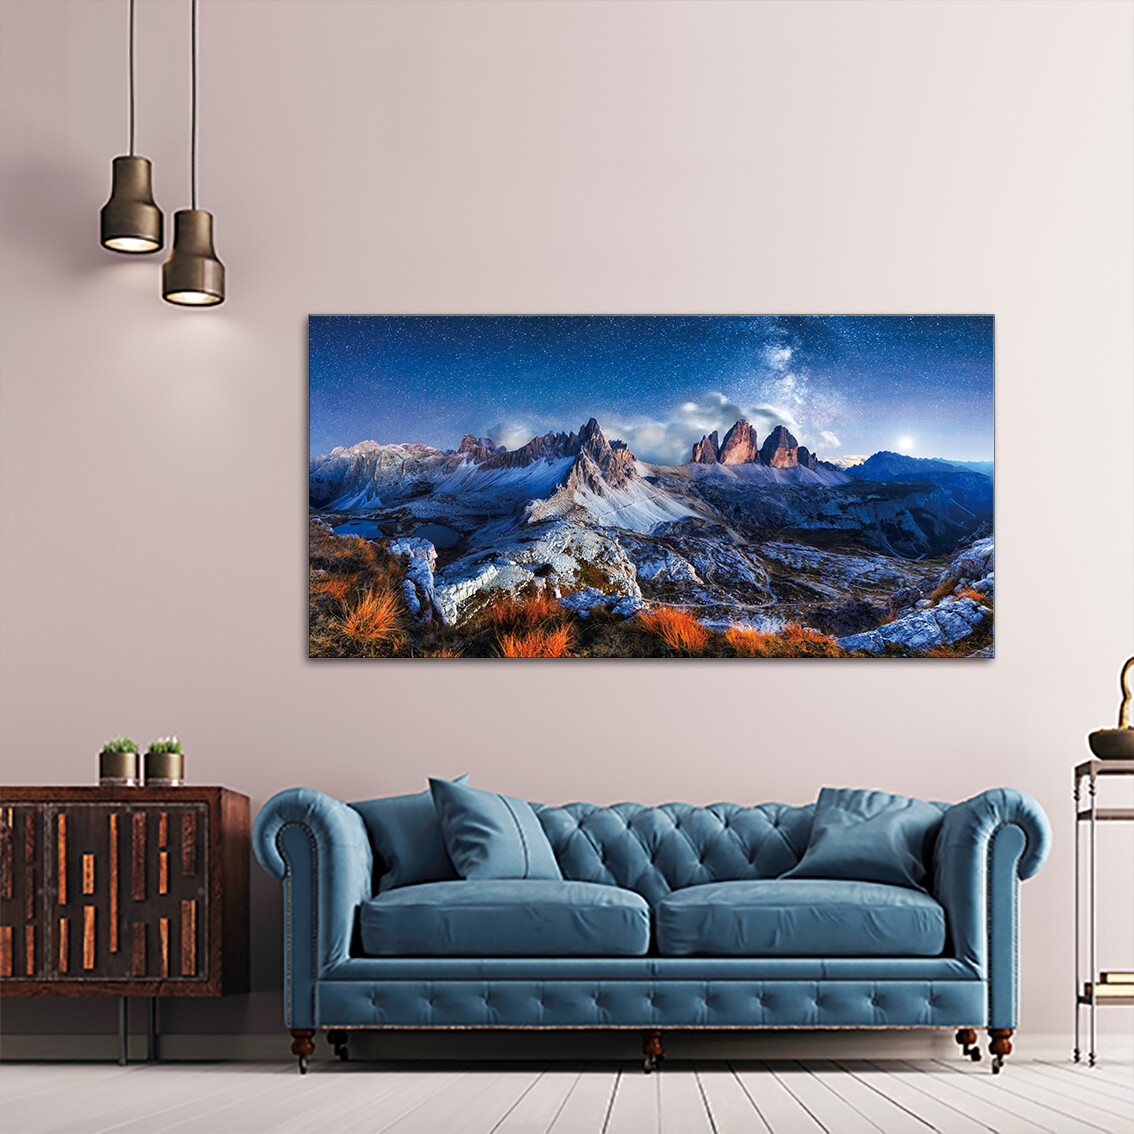 Swiss Alps  - Modern Luxury Wall art Printed on Acrylic Glass - Frameless and Ready to Hang